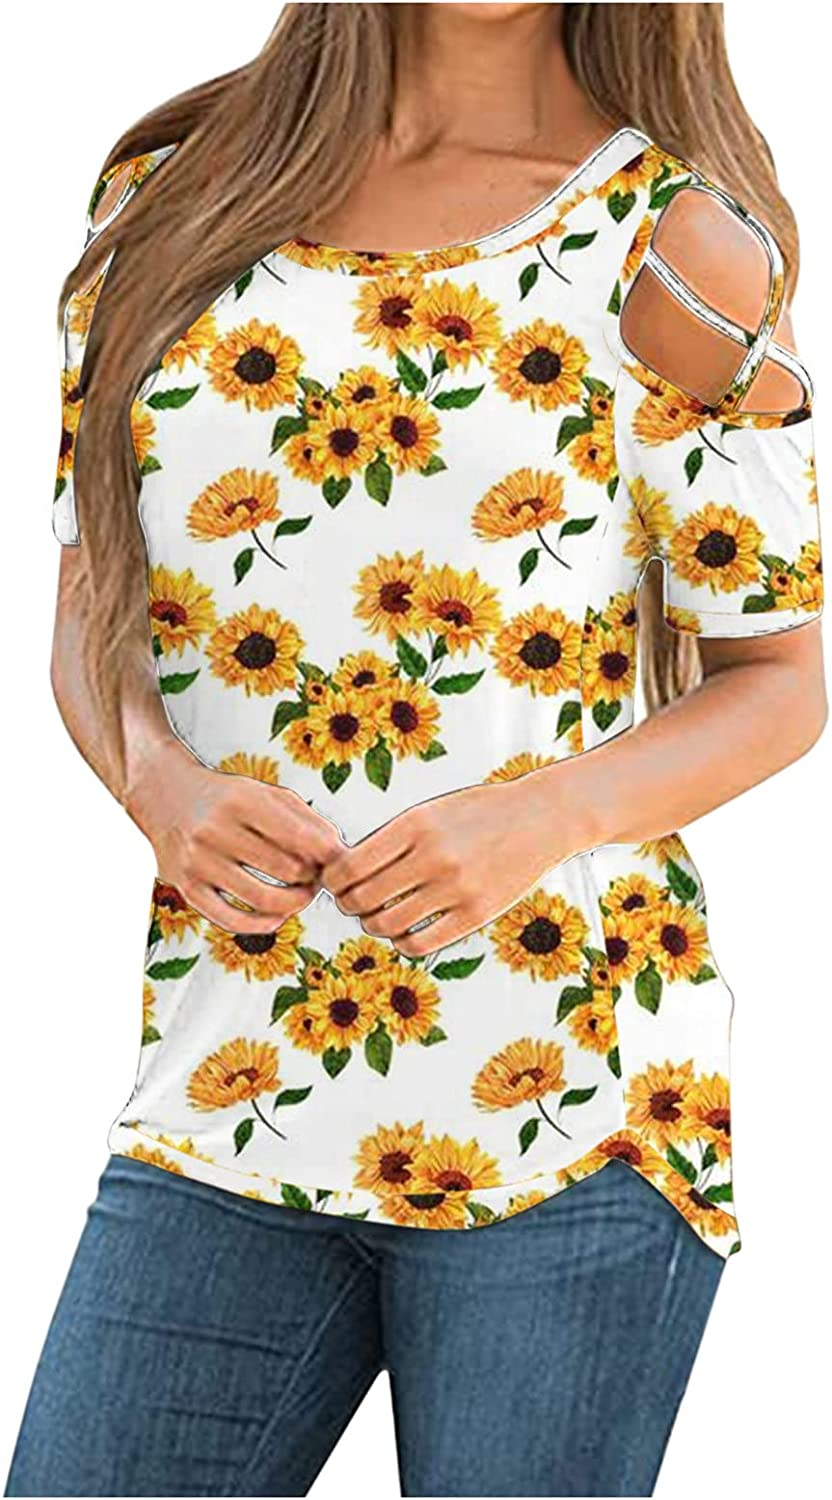 Womens Summer Tops,Womens Round Neck T Shirts Short Sleeve Loose Strappy Cold Shoulder Tunic Casual Basic Tees Tops